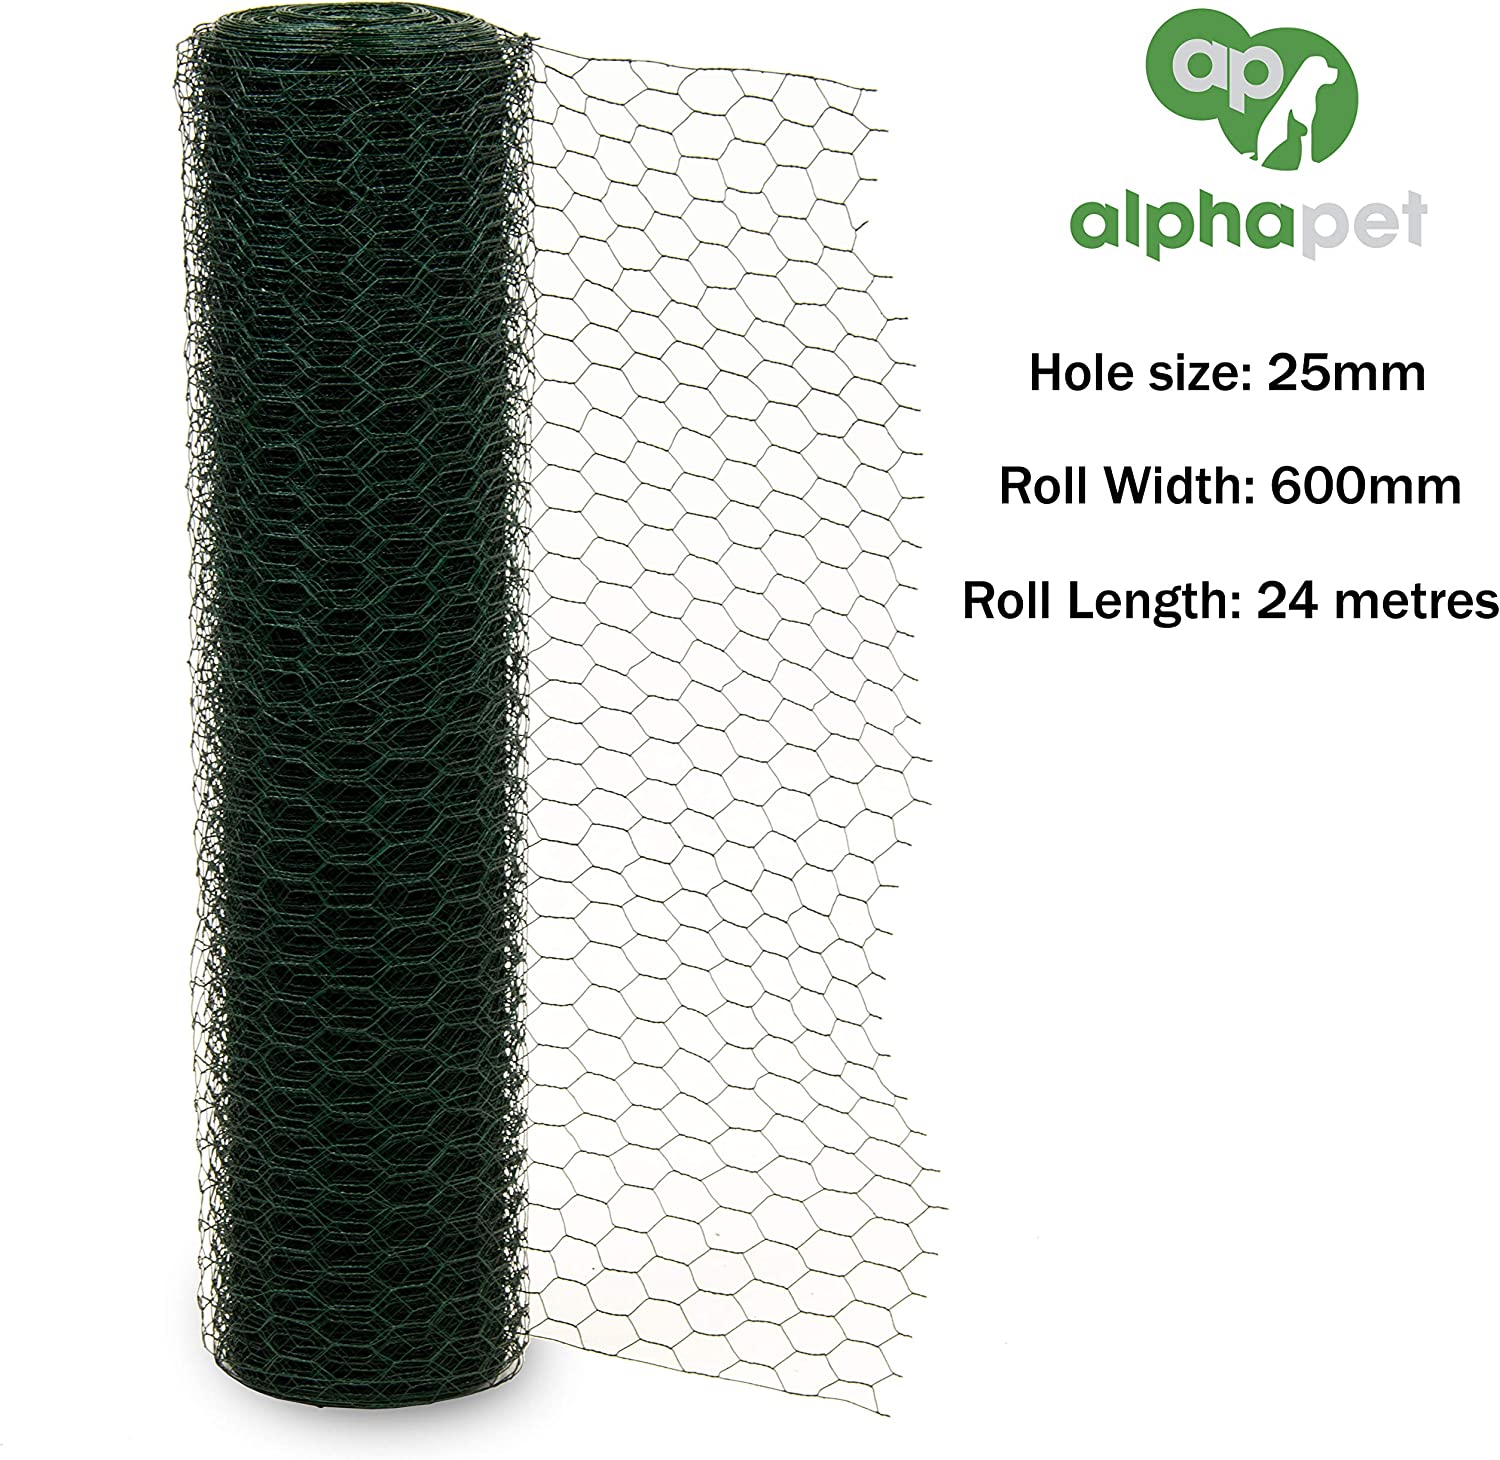 Hole Size 25mm 0.6m x 36m Alphapet/® Green PVC Coated Galvanised Chicken Wire Mesh Aviary Rabbit Pet Steel Metal Garden Netting Fence